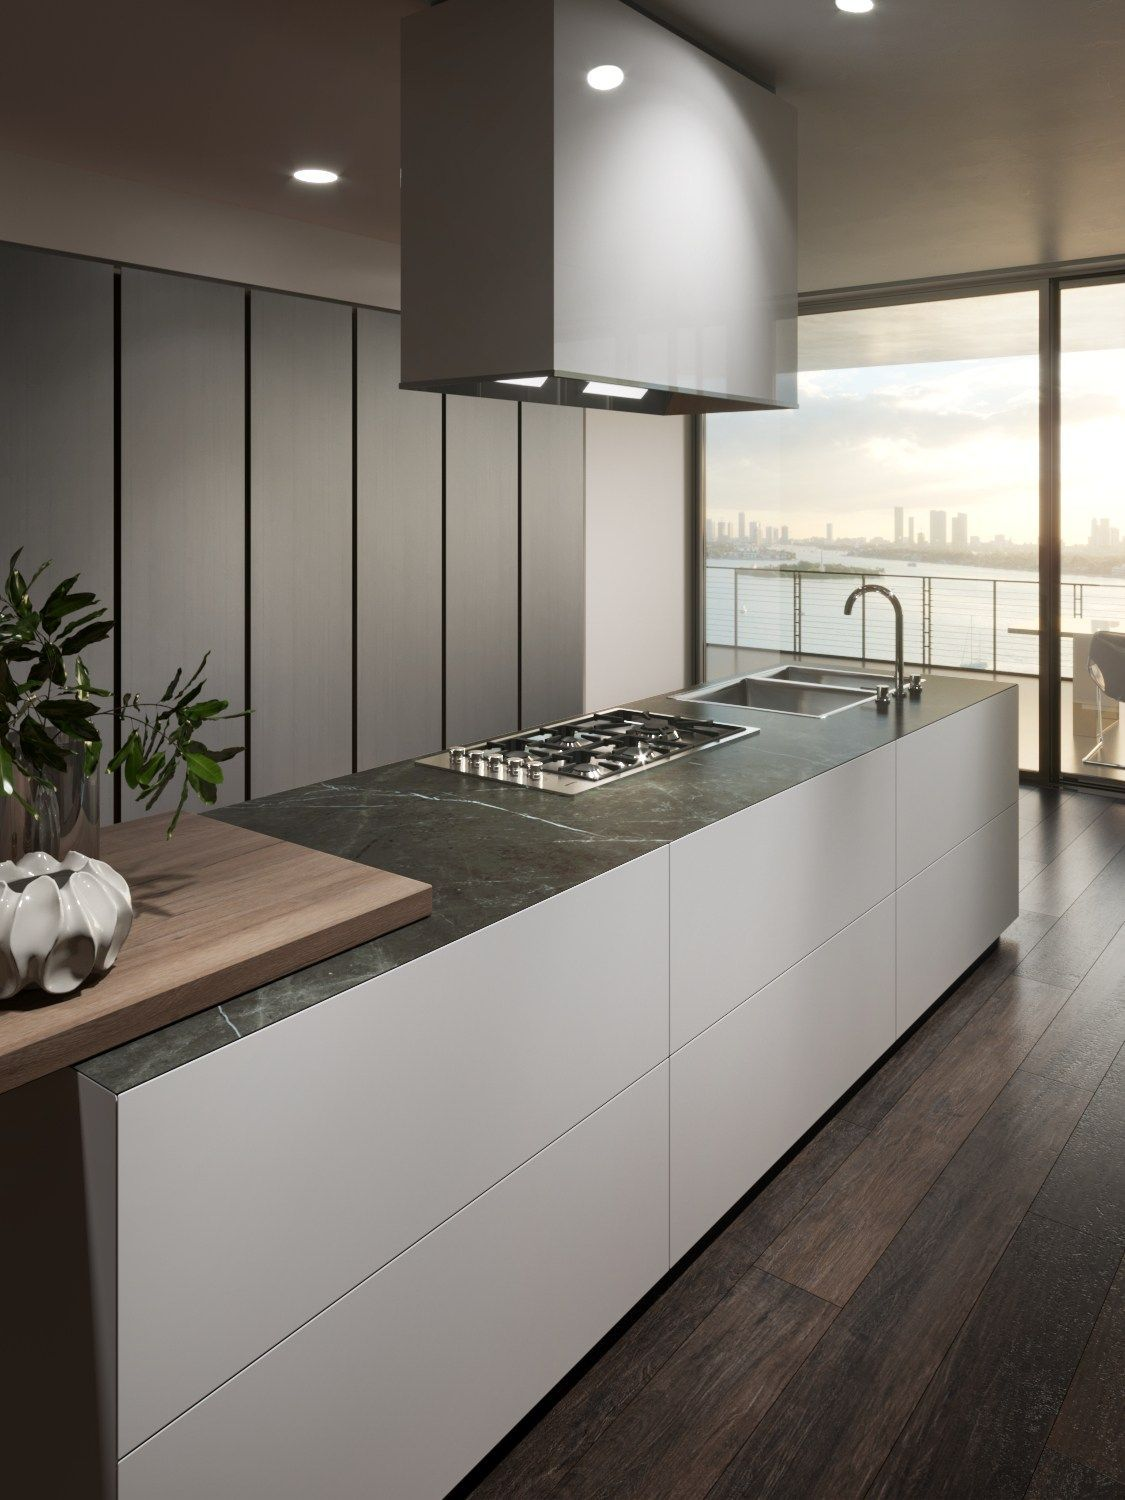 kitchen Monolite By scic, fitted kitchen without